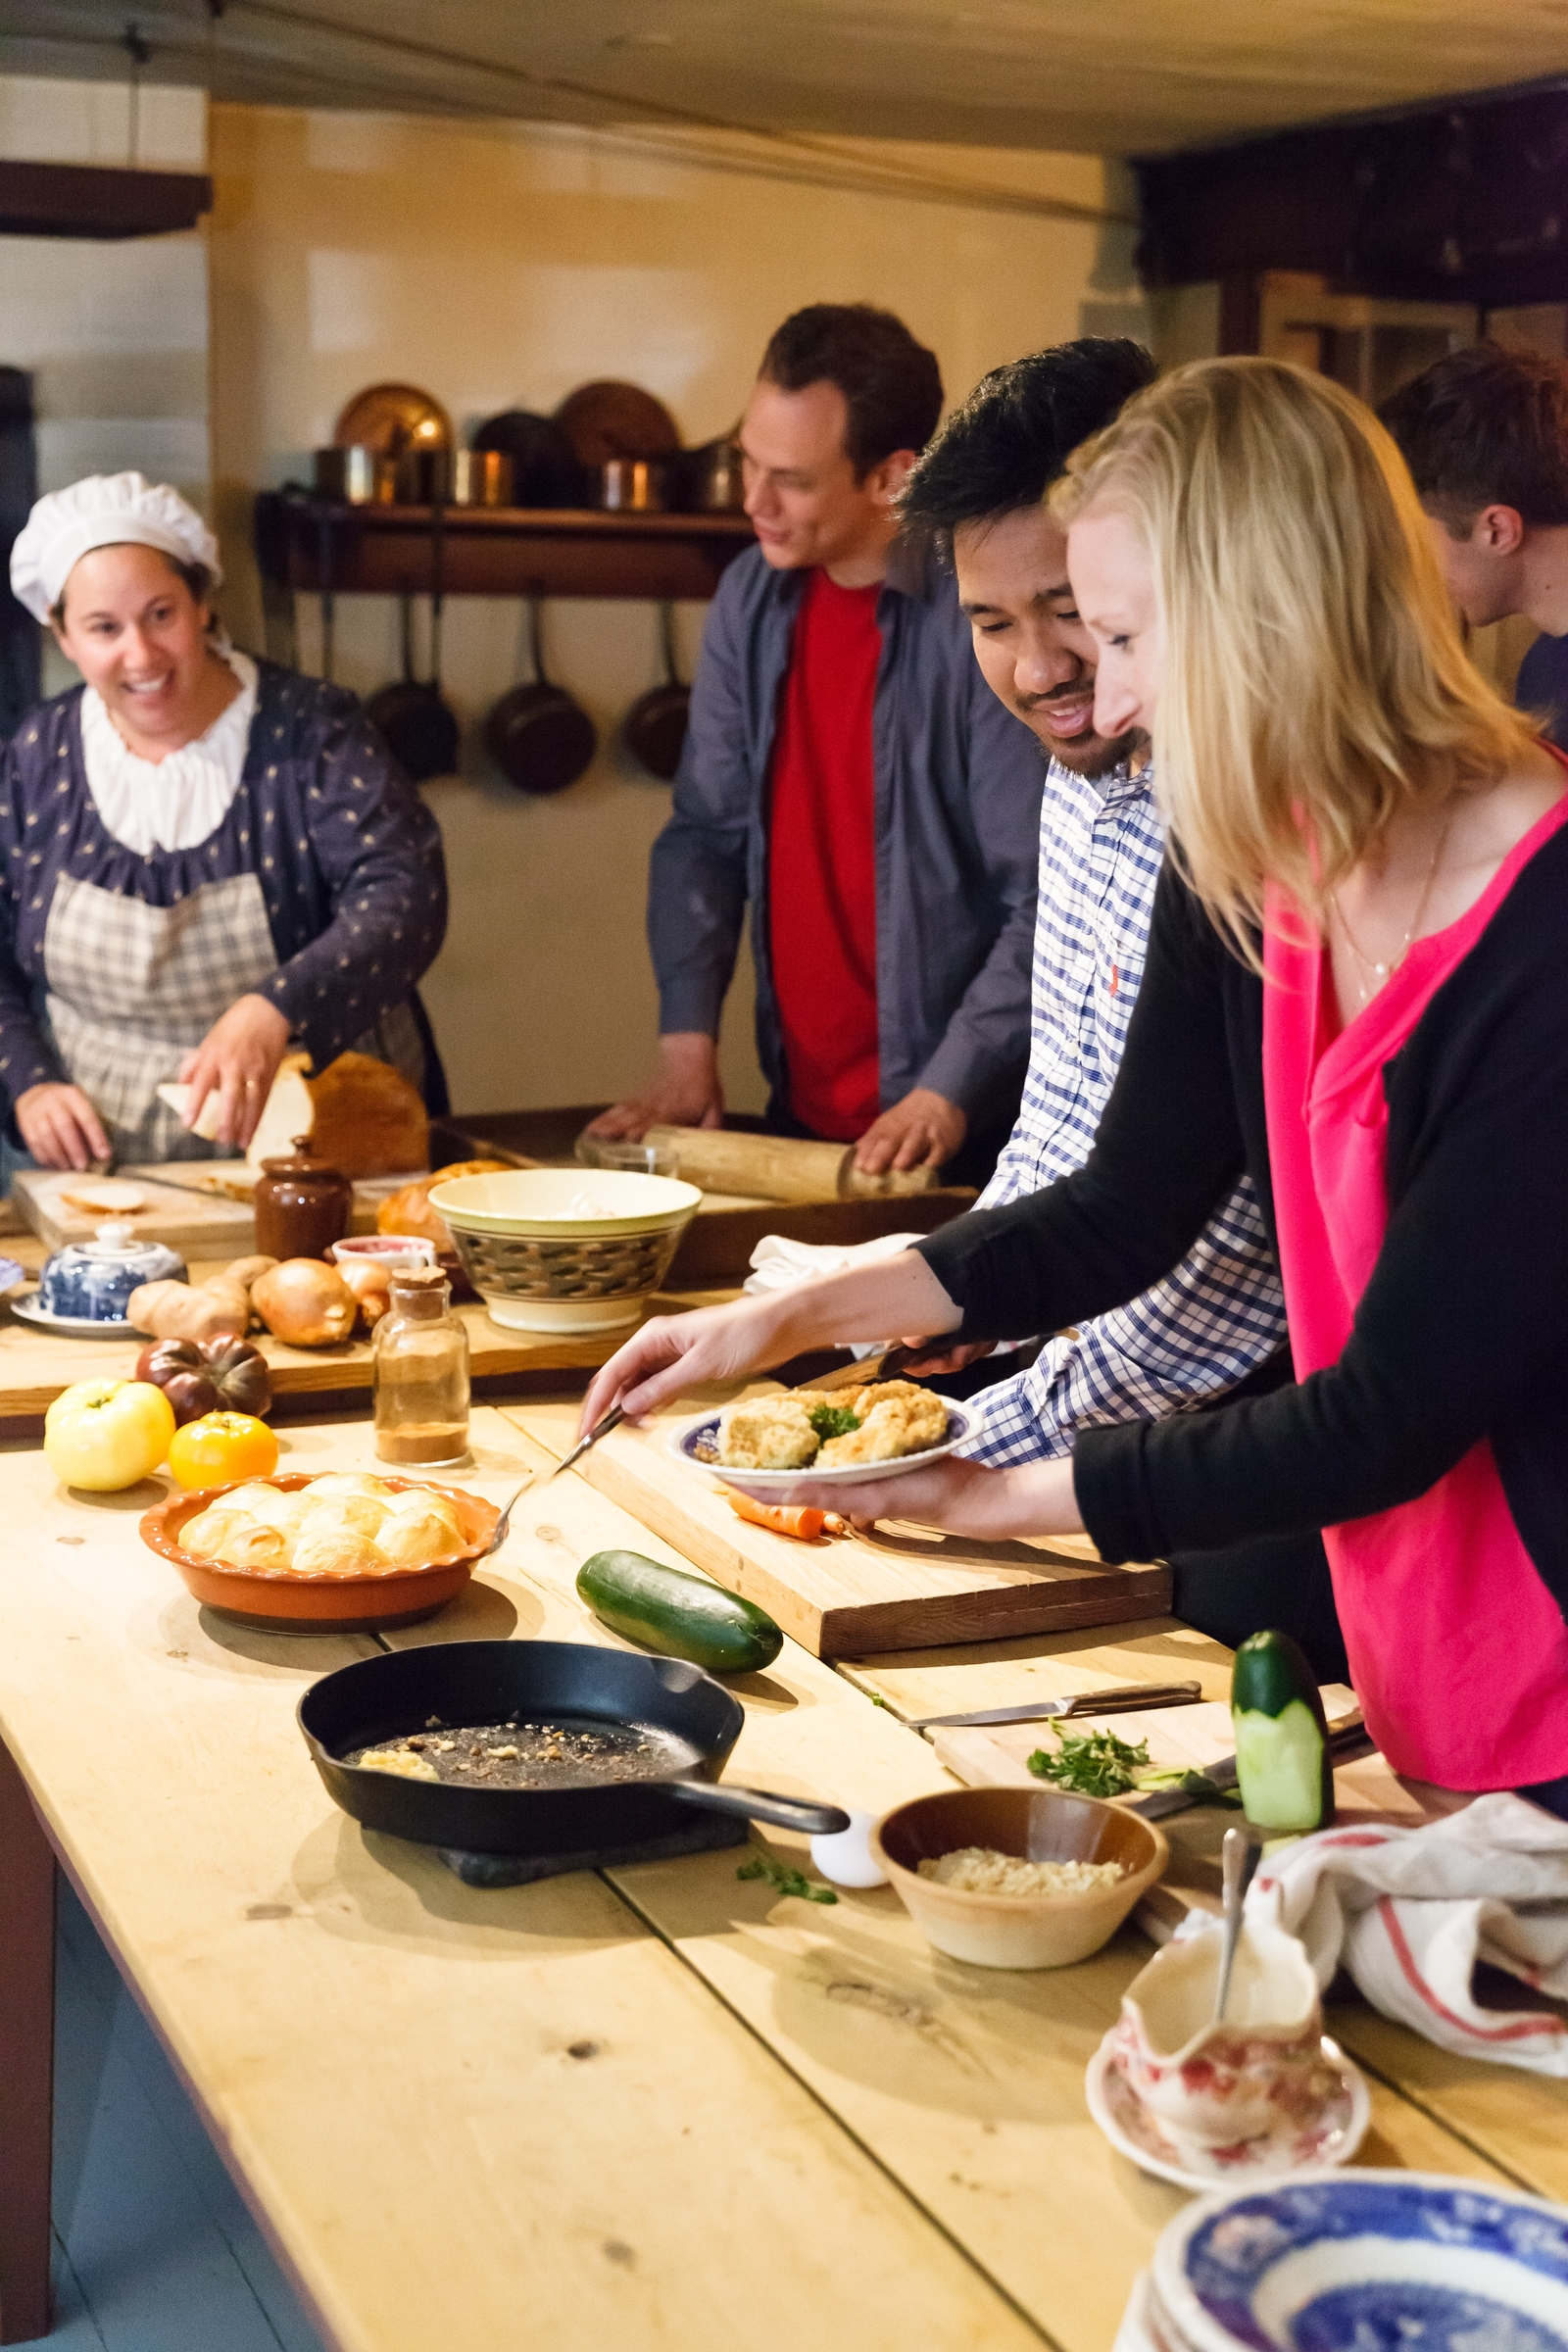 Cast Iron Chef workshop at Dundurn National Historic Site